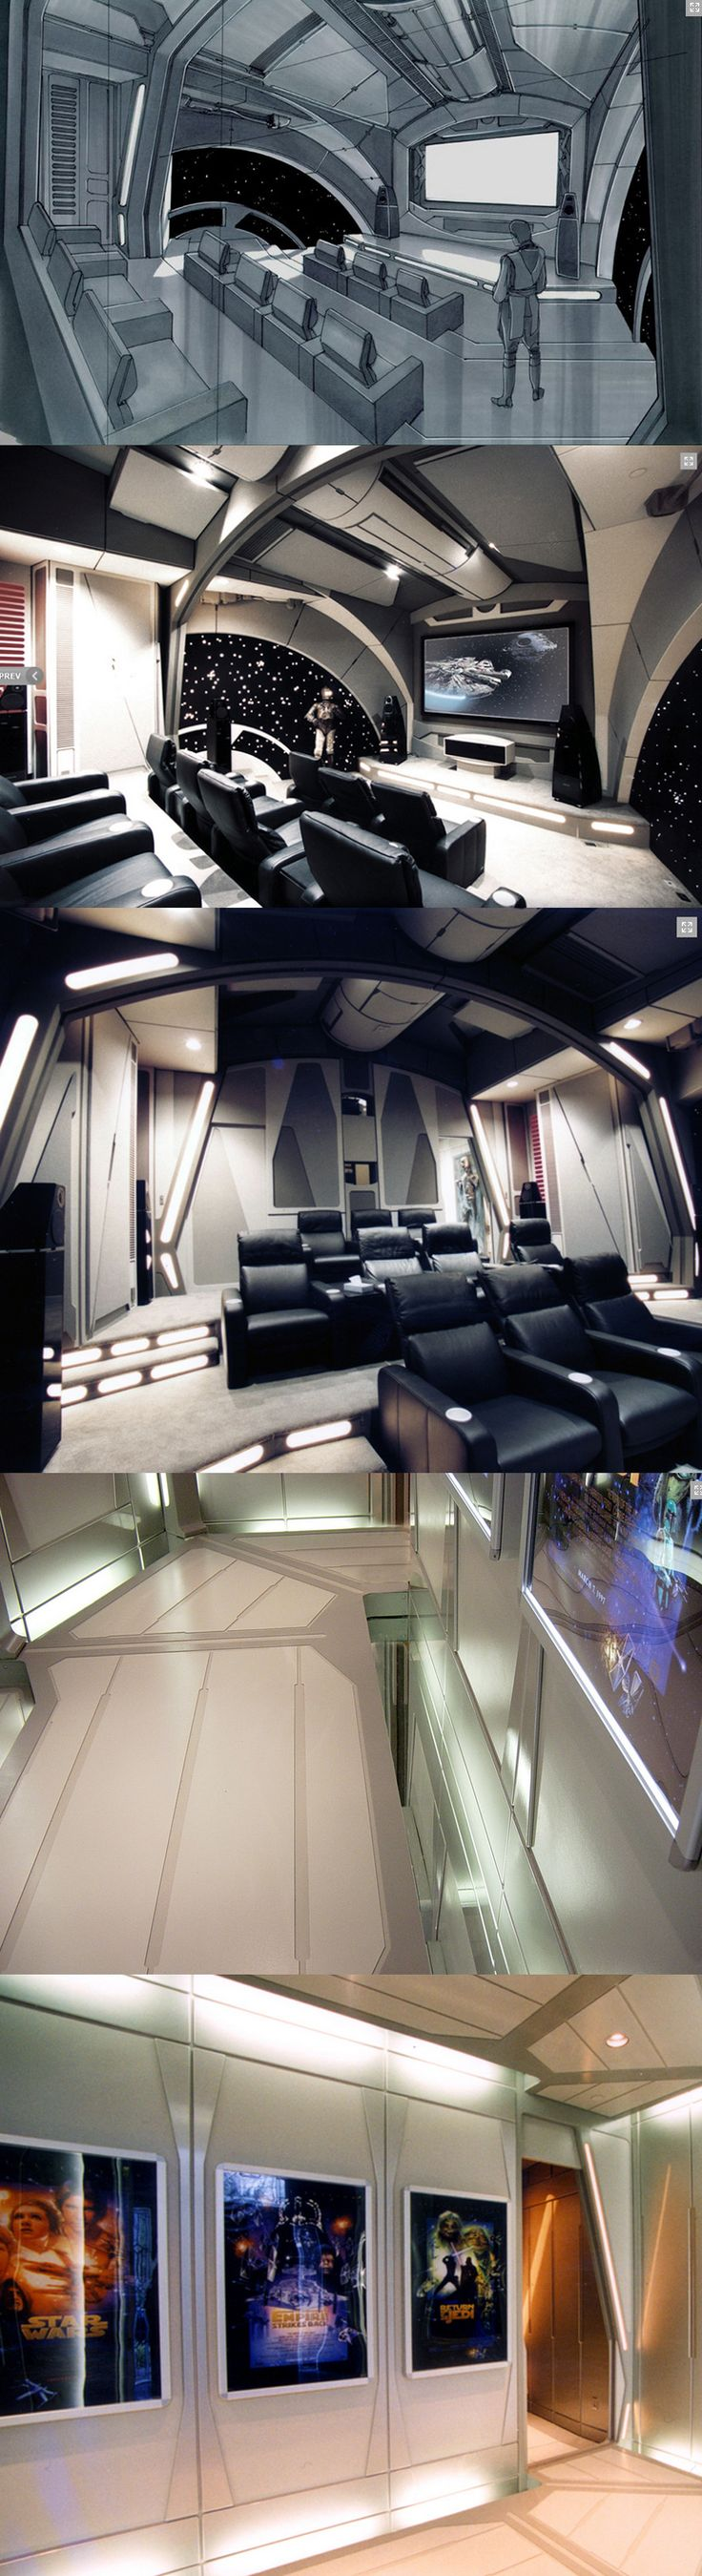 Star Wars Home Theater!! Wow! i want this!!